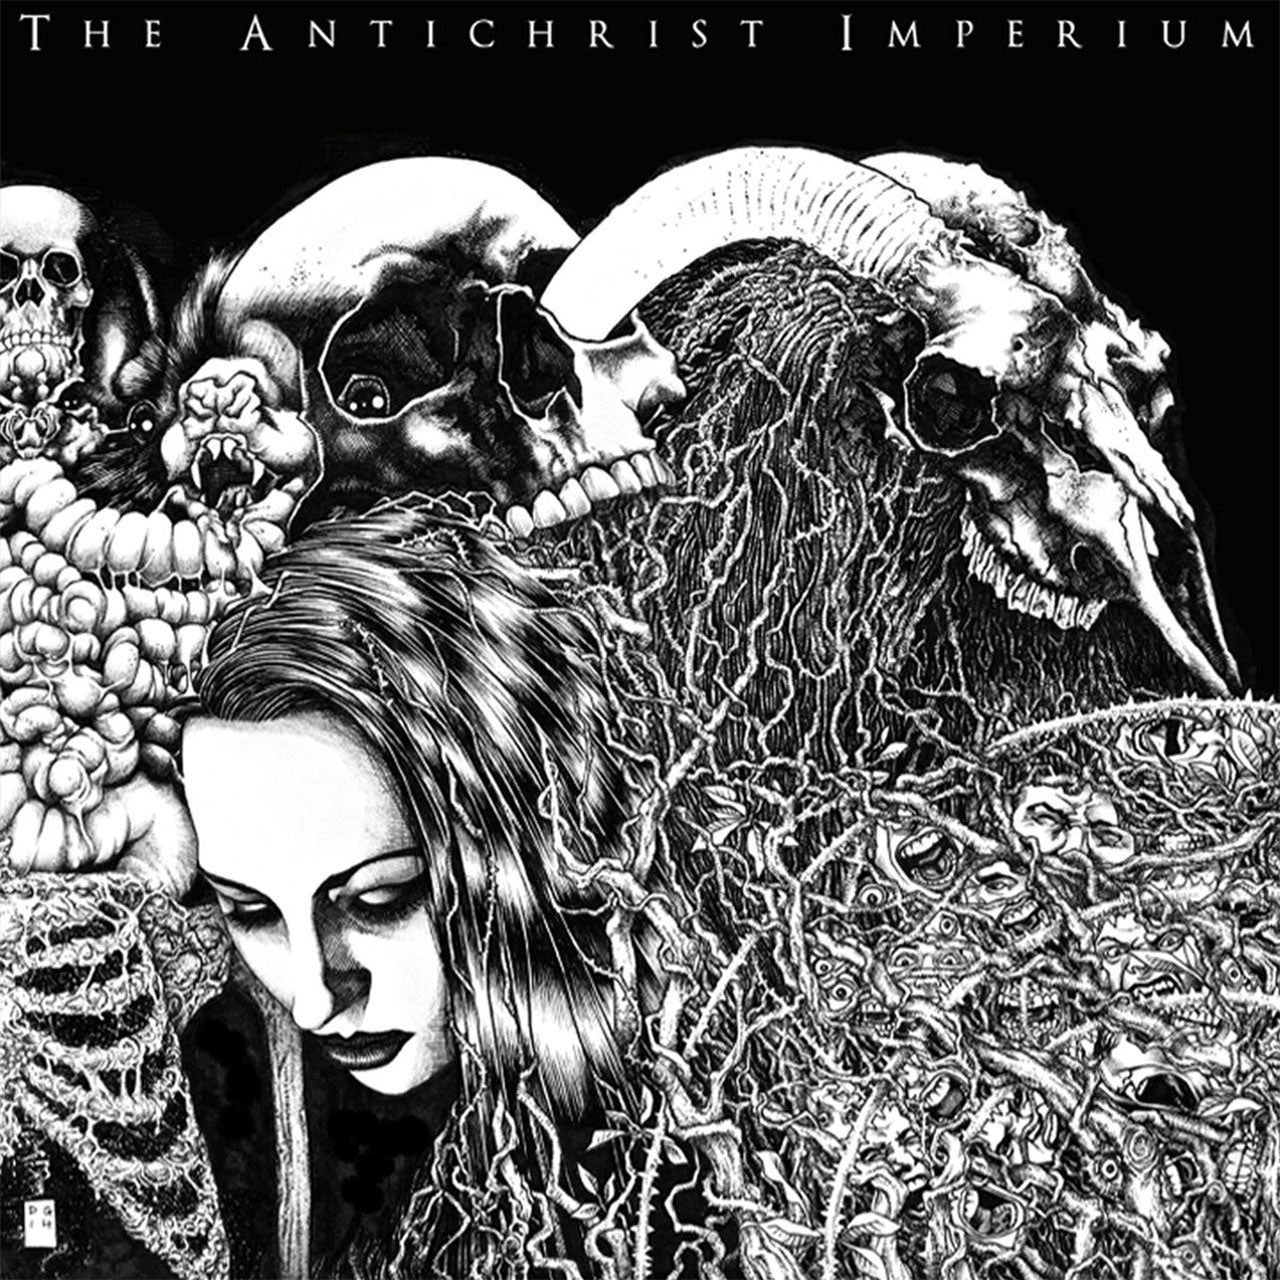 The Antichrist Imperium - The Antichrist Imperium (CD)